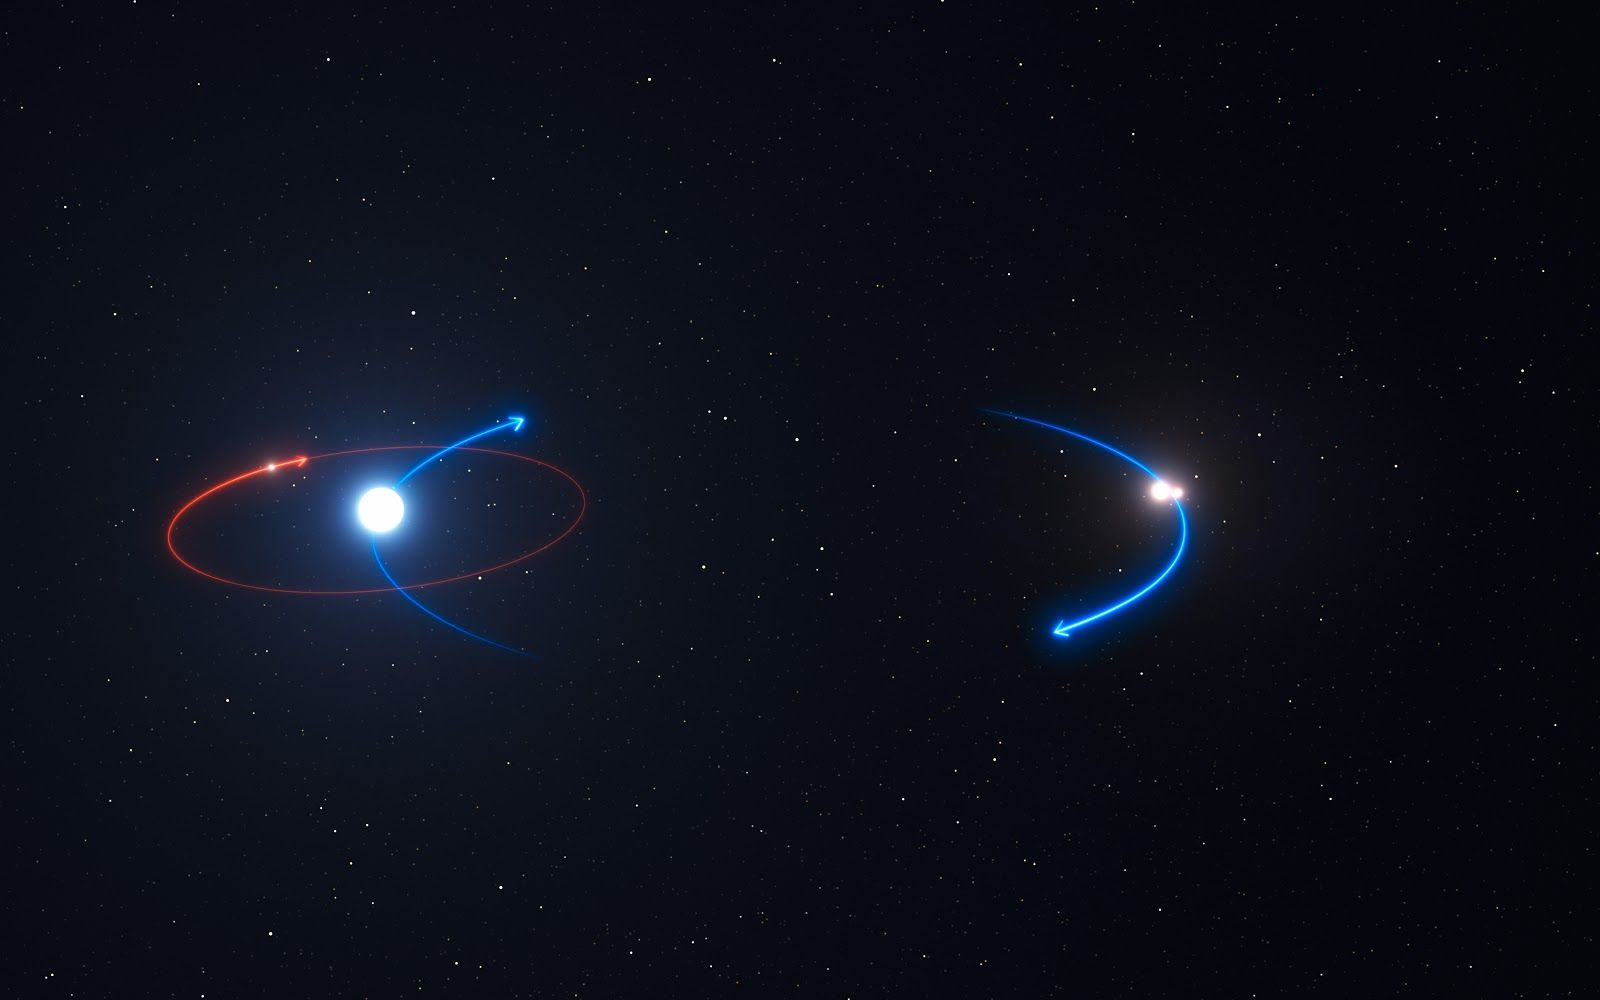 A team of astronomers have used the SPHERE instrument on ESO's Very Large Telescope to image the first planet ever found in a wide orbit inside a triple-star system. The orbit of such a planet had been expected to be unstable, probably resulting in the planet being quickly ejected from the system. But somehow this one survives. This unexpected observation suggests that such systems may actually be more common than previously thought.  Luke Skywalker's home planet, Tatooine, in the Star Wars…